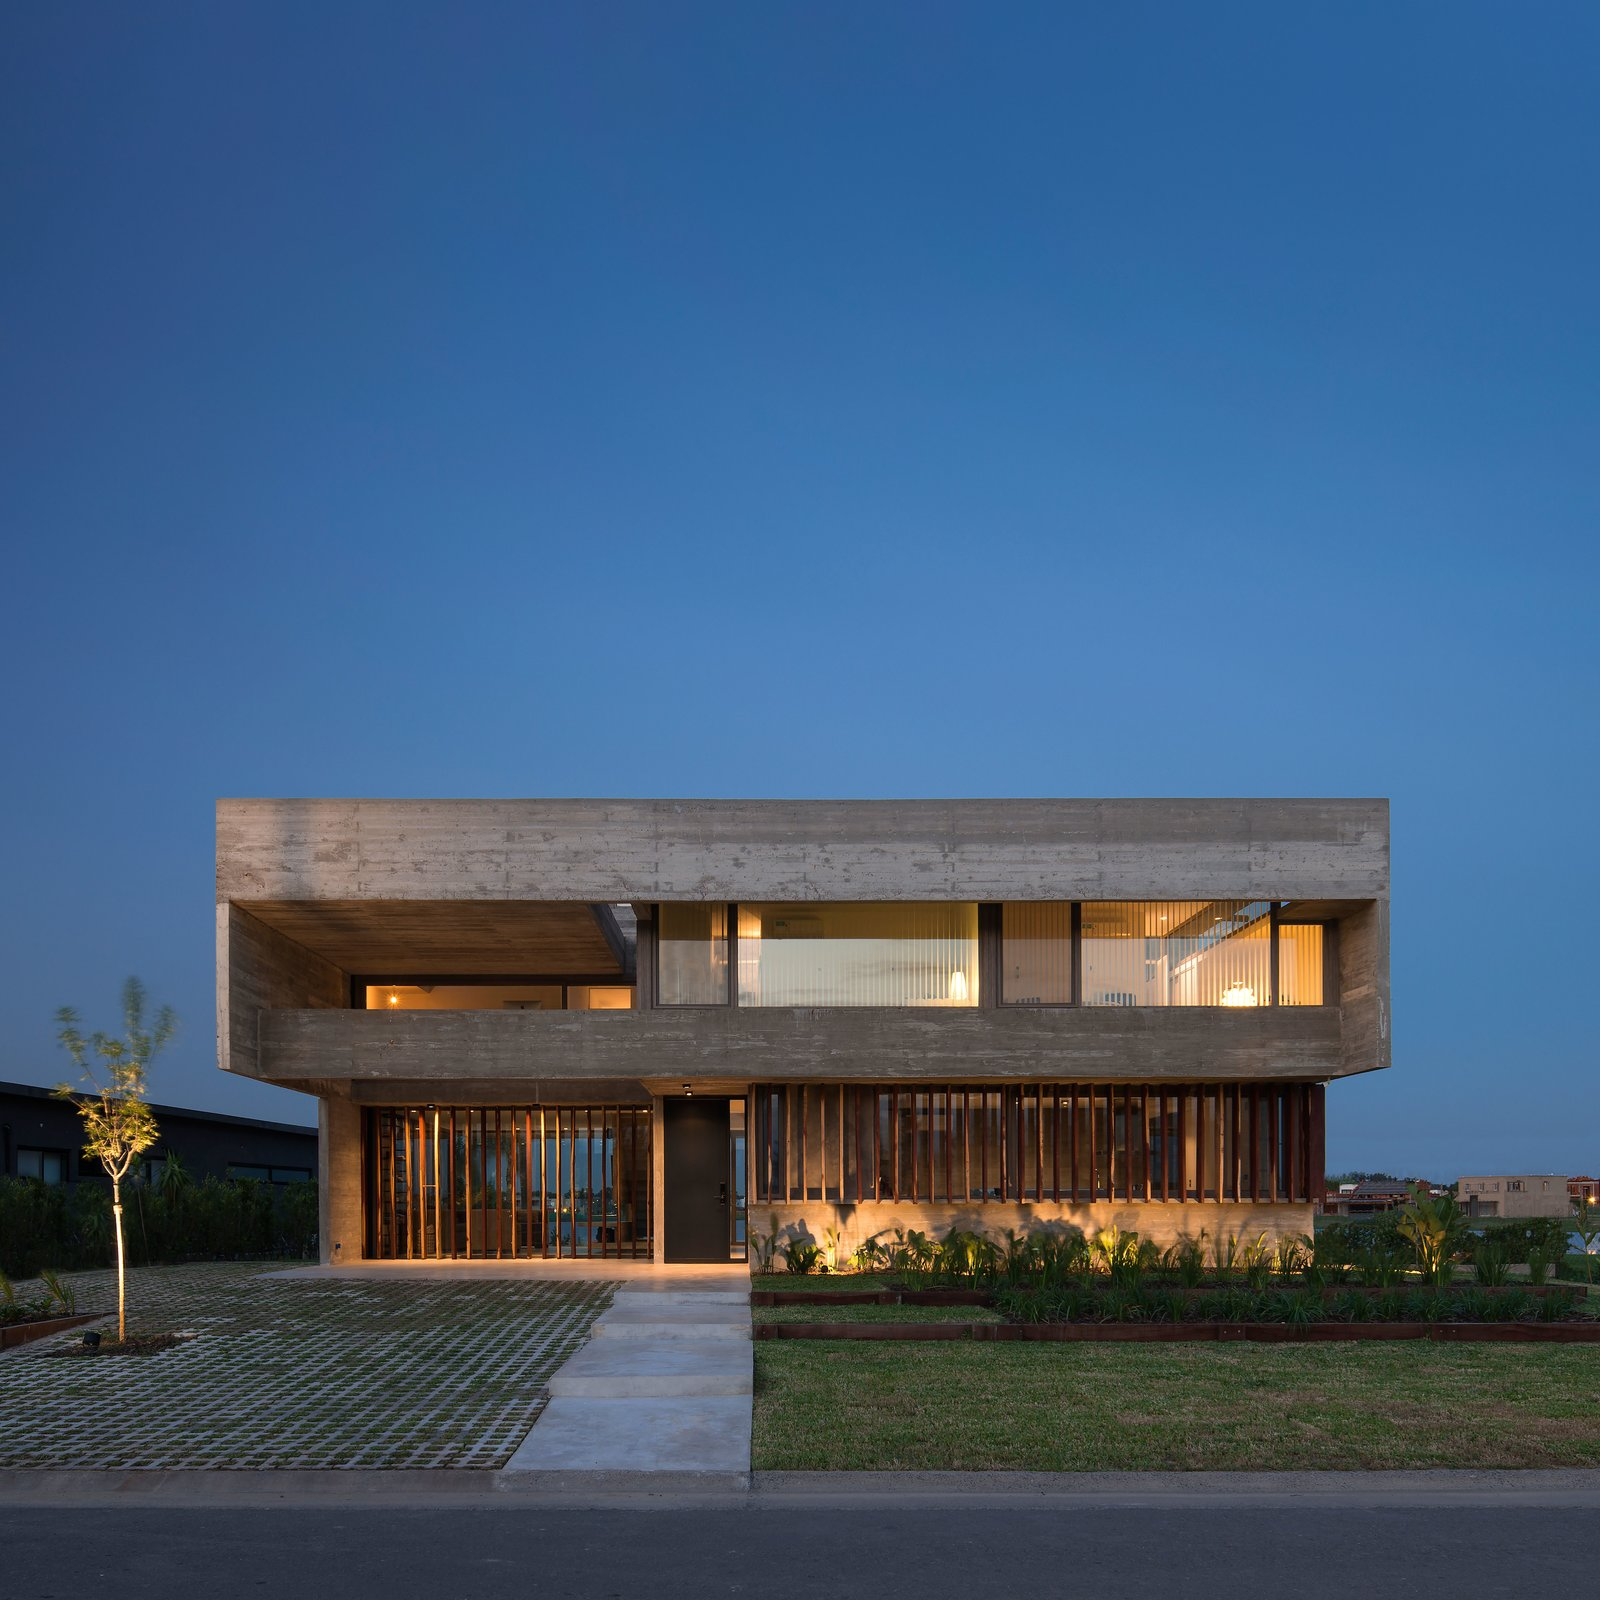 Exterior, Concrete Siding Material, House Building Type, and Flat RoofLine  10 House by Luciano Kruk arquitectos